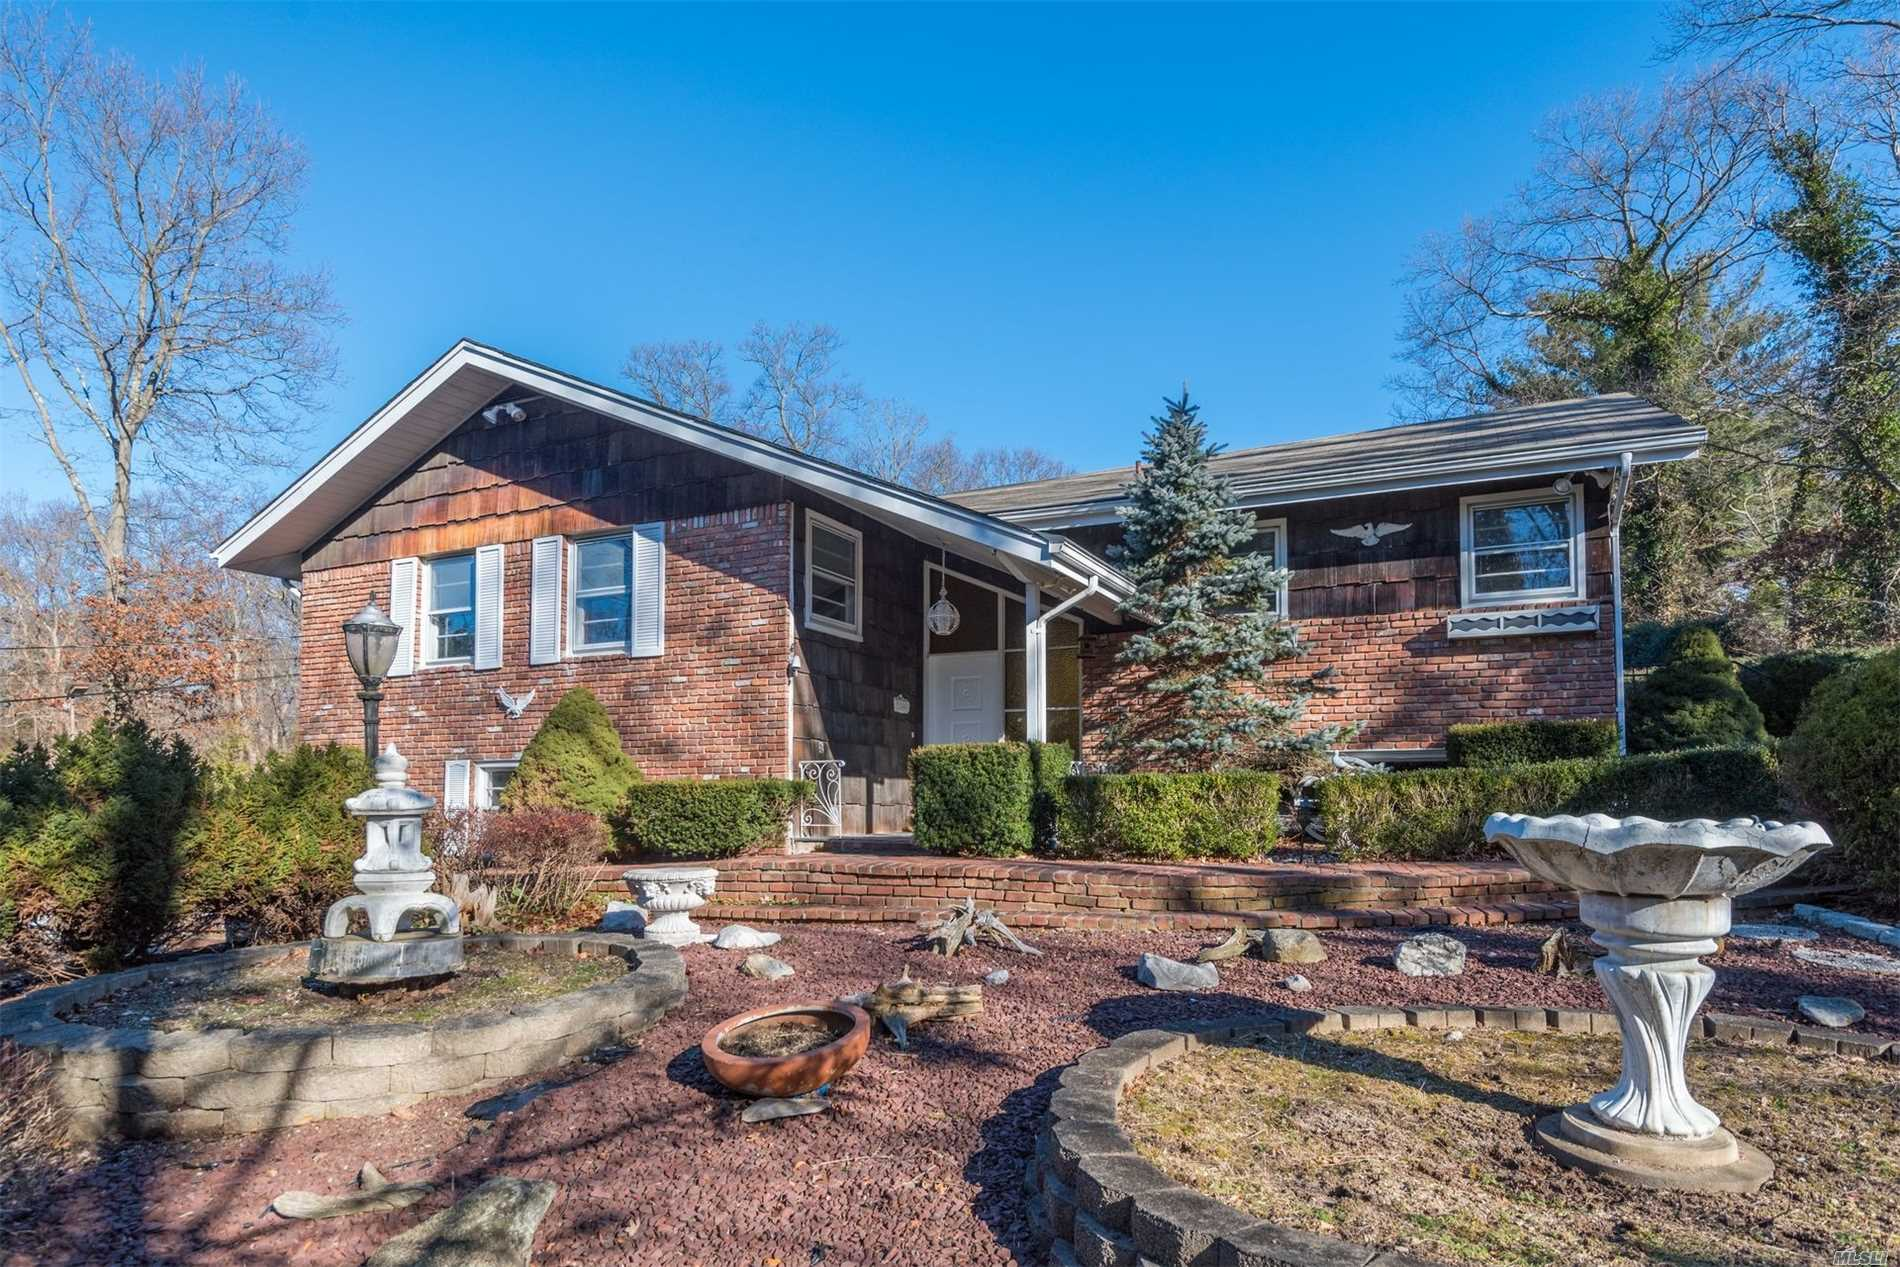 This Great Custom Built 1959 Hi-Ranch Is For The Buyer That Wants To Be On Top Of The World. With 1.75 Acres Of Property It's Probably One Of The Highest Points On Long Island. The House Is Surrounded By Brick Patios And Walkways. There Is A Paved Belgian Block Edged Driveway That Runs Up To The Top Of The Property. Up Past The House Is A Large Two Car Garage With Shed Attached That Is Currently A Wonderful Wood Shop, But Could Be An Artist's Studio Or Collector's Garage. Truly A Special Place.